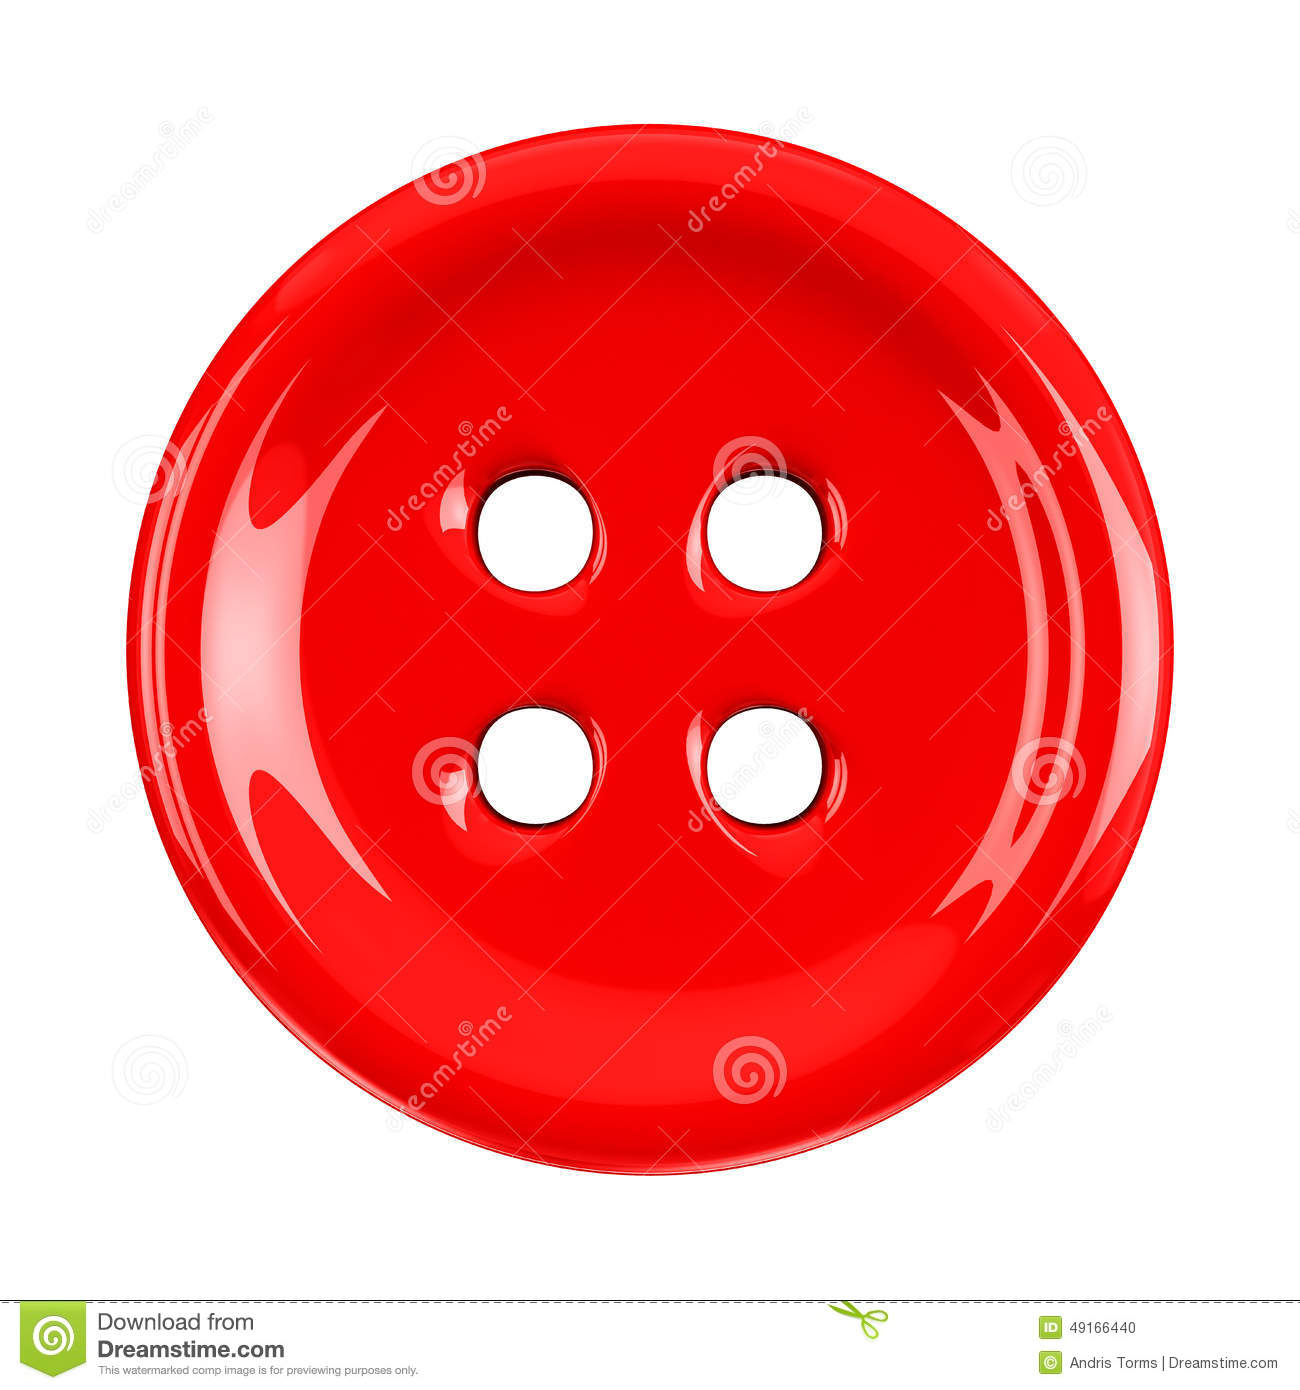 Red Cloth Button 3d Stock Illustration Image 49166440